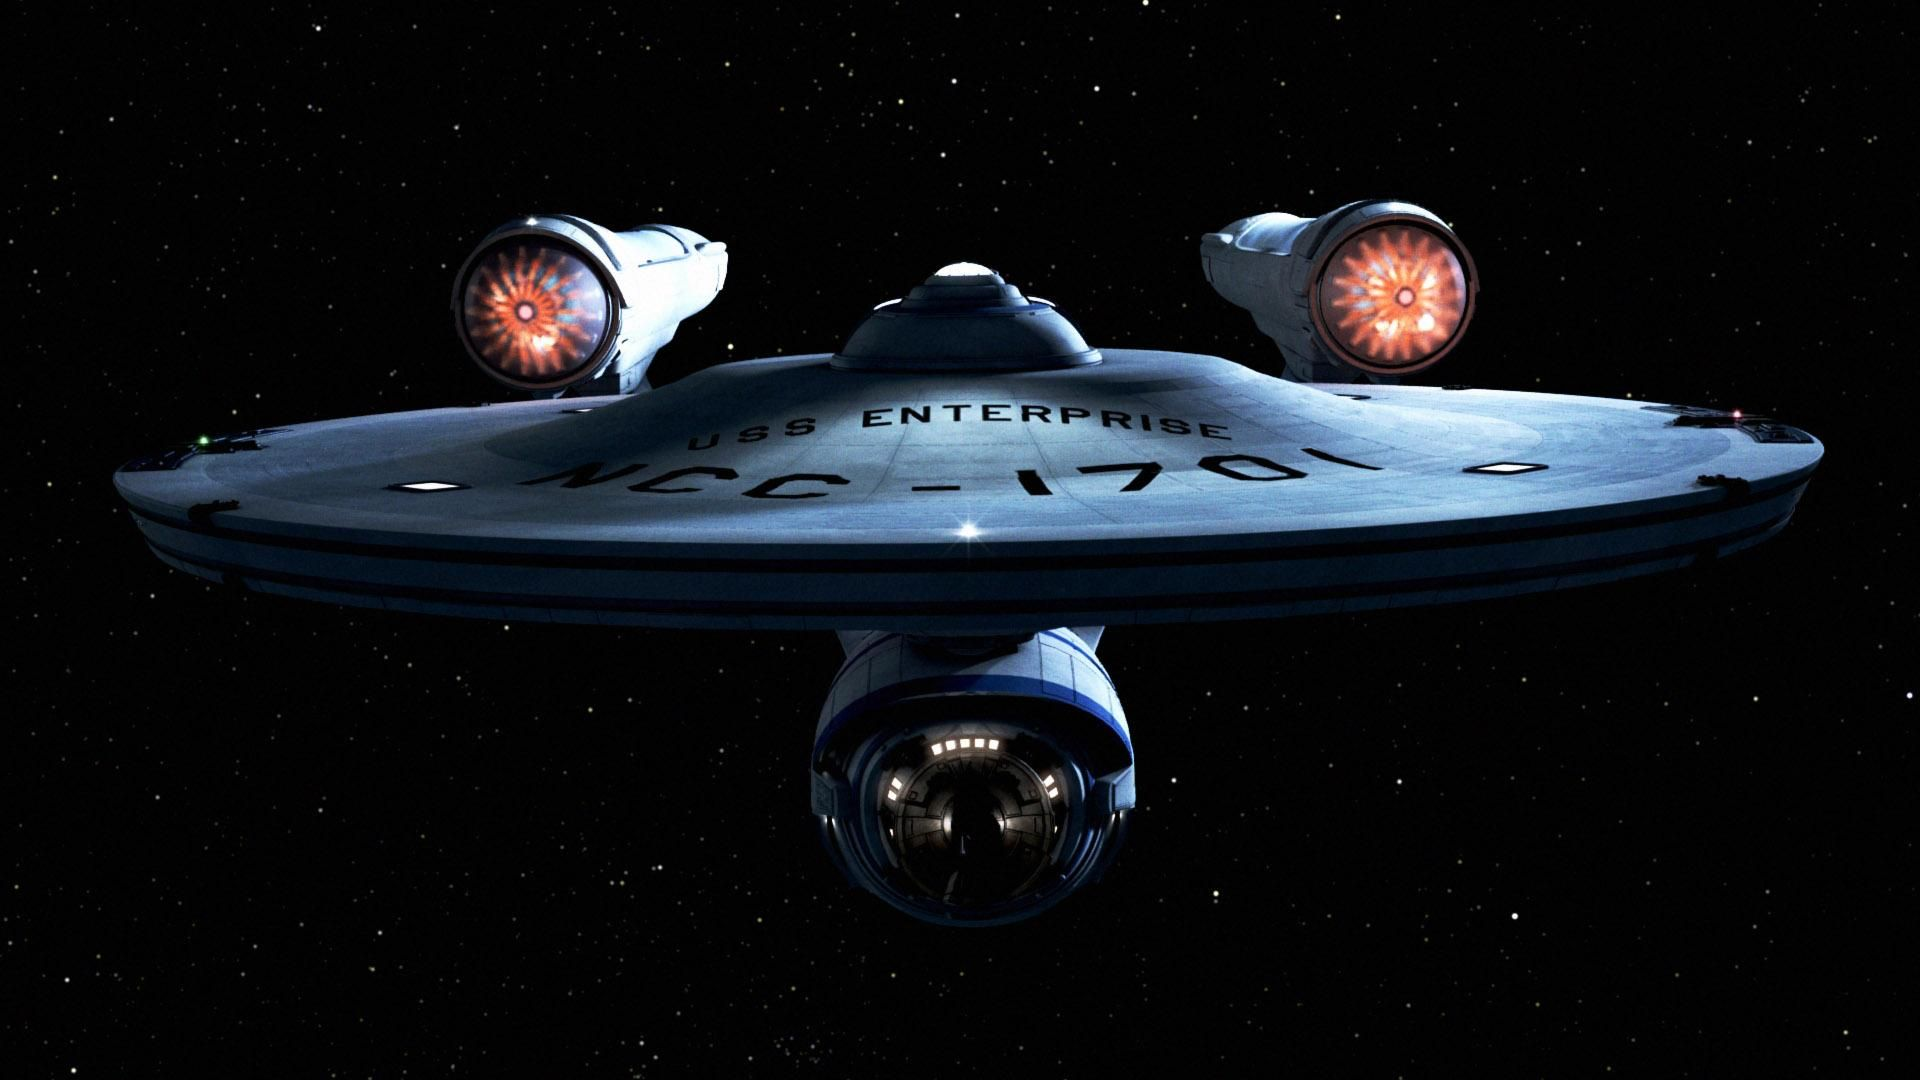 Star Trek Wallpapers 7957 Full HD 1920x1920 Resolution